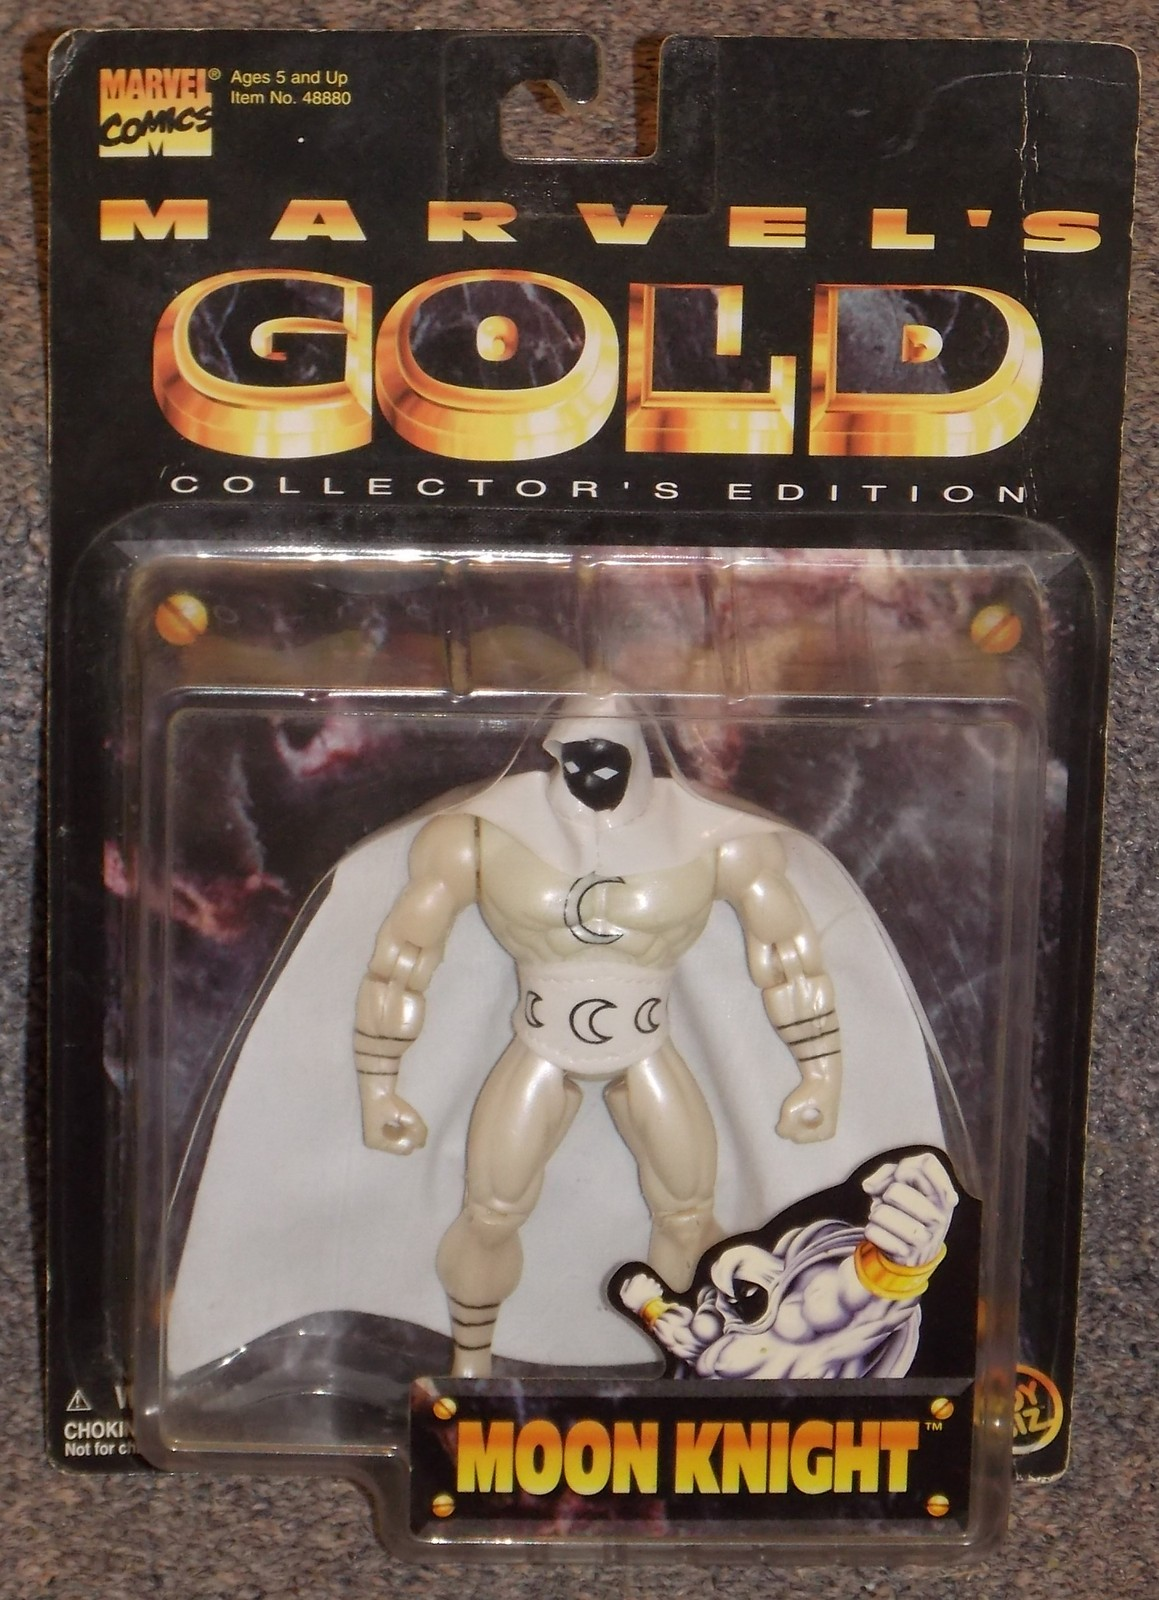 Vintage 1997 Marvel Comics Moon Knight Action Figure New In The Package image 2